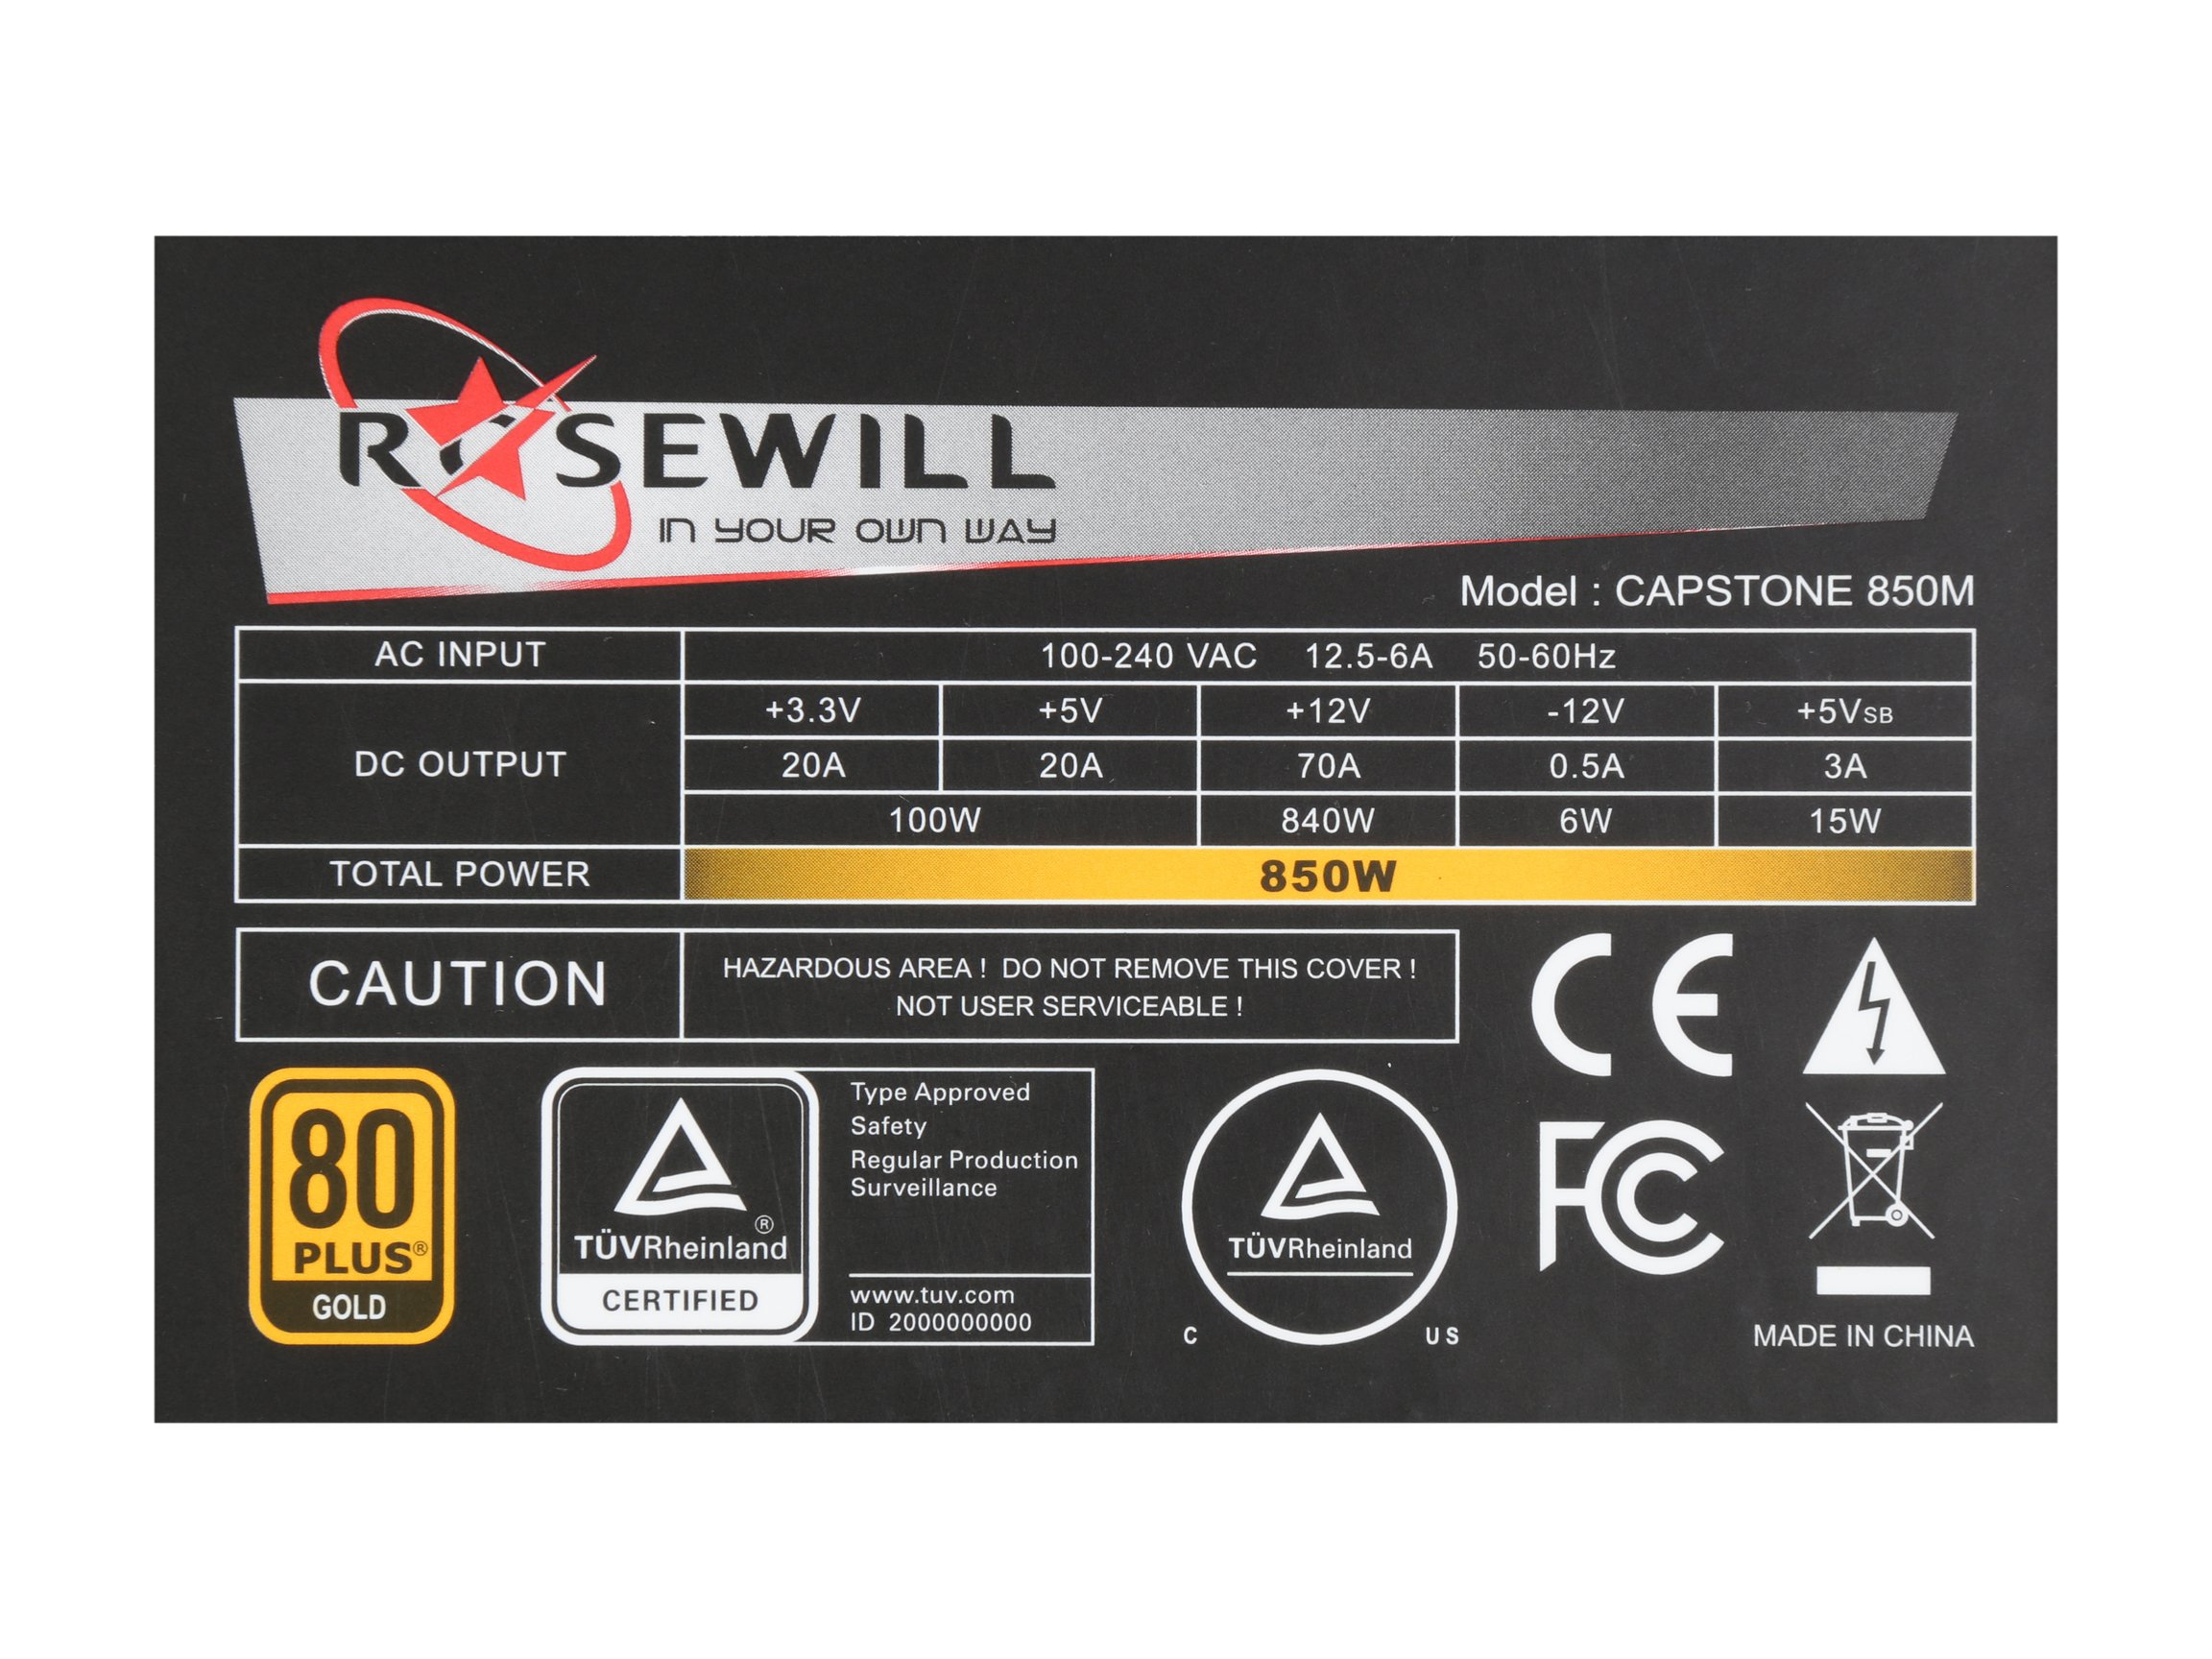 ROSEWILL Gaming 80 Plus Gold 850W Power Supply / PSU, CAPSTONE Series 850 Watt 80 PLUS Gold Certified PSU with Silent 135mm Fan and Auto Fan Speed Control, 7 Year Warranty by Rosewill (Image #6)